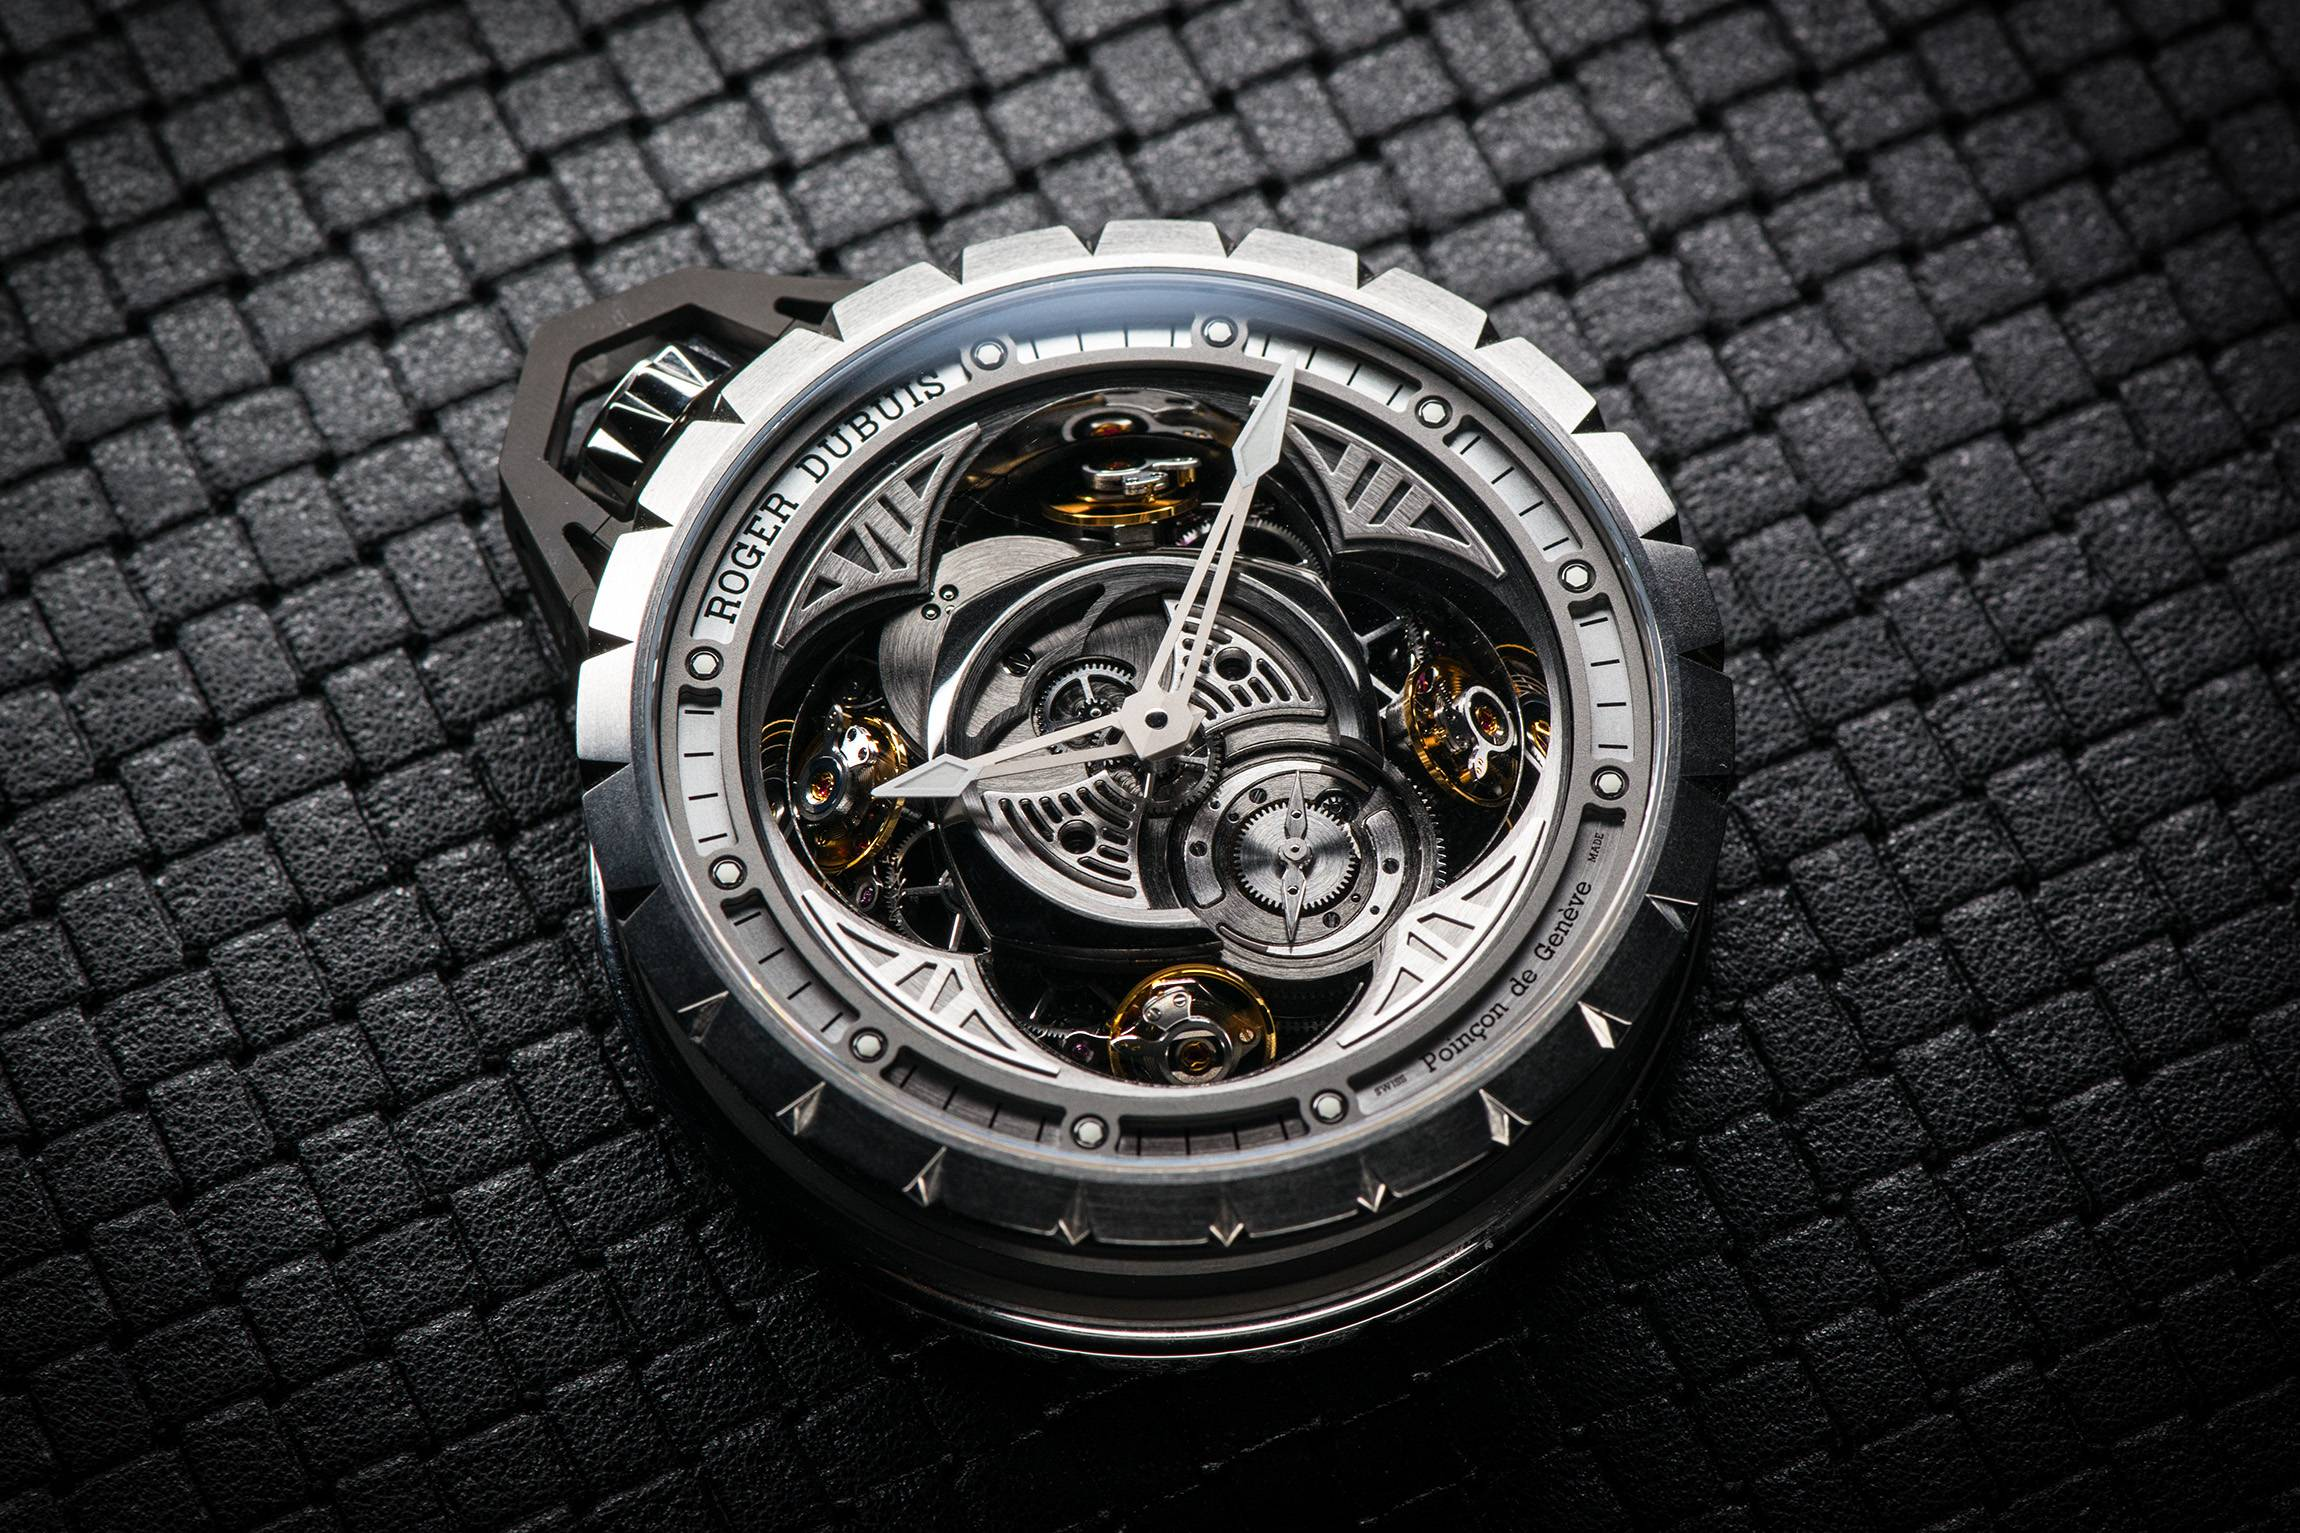 Replica Roger Dubuis Excalibur Spider Pocket Time Instrument Pocket Watch Watches & Wonders 2015